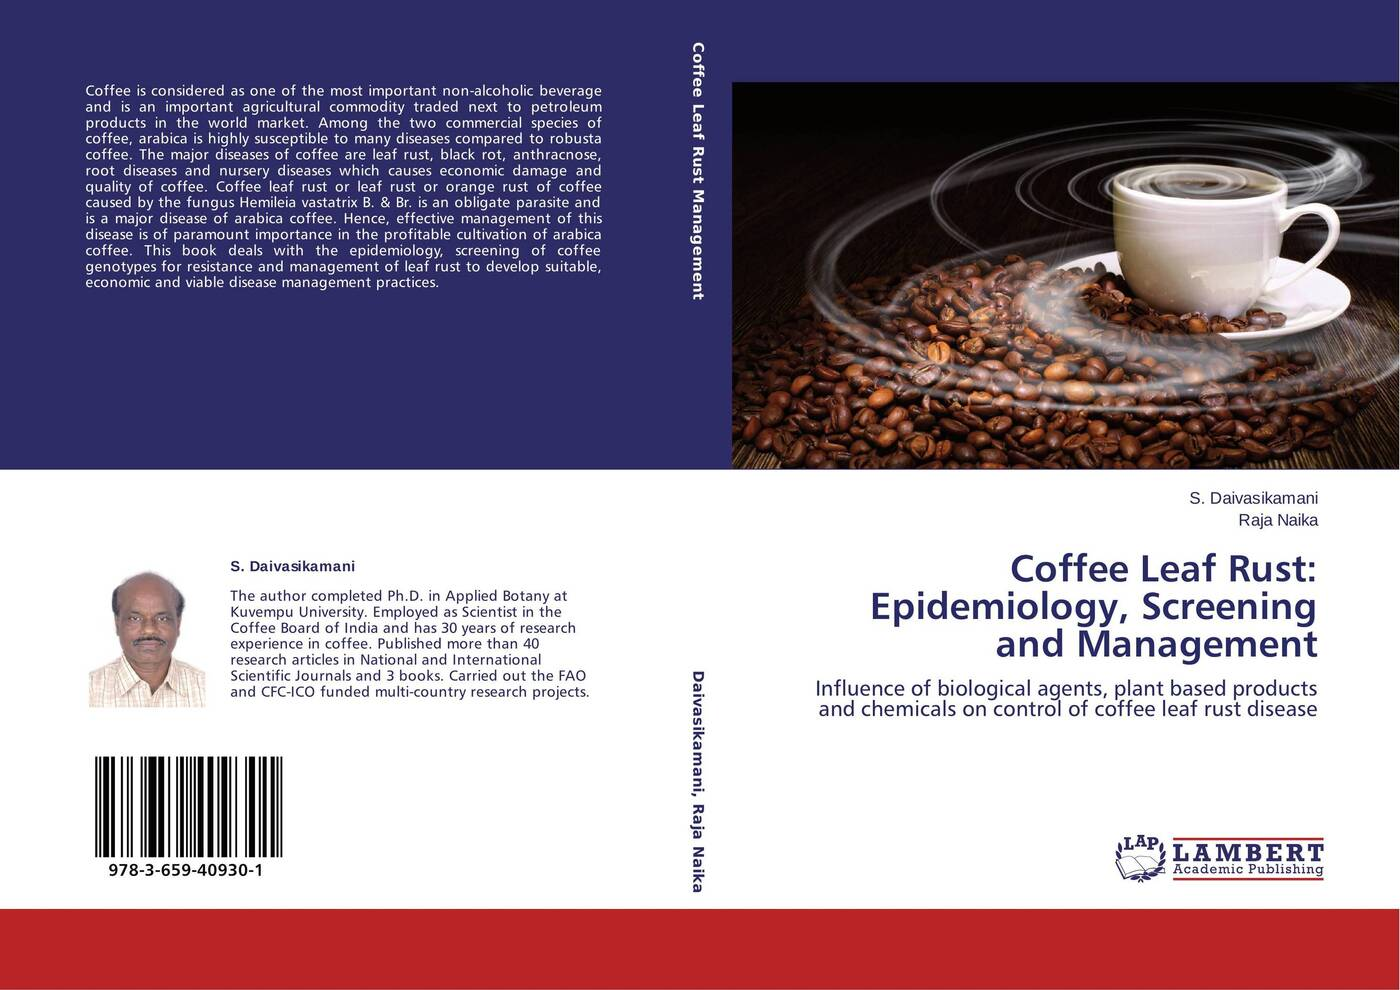 S. Daivasikamani and . Raja Naika Coffee Leaf Rust: Epidemiology, Screening and Management the story of coffee